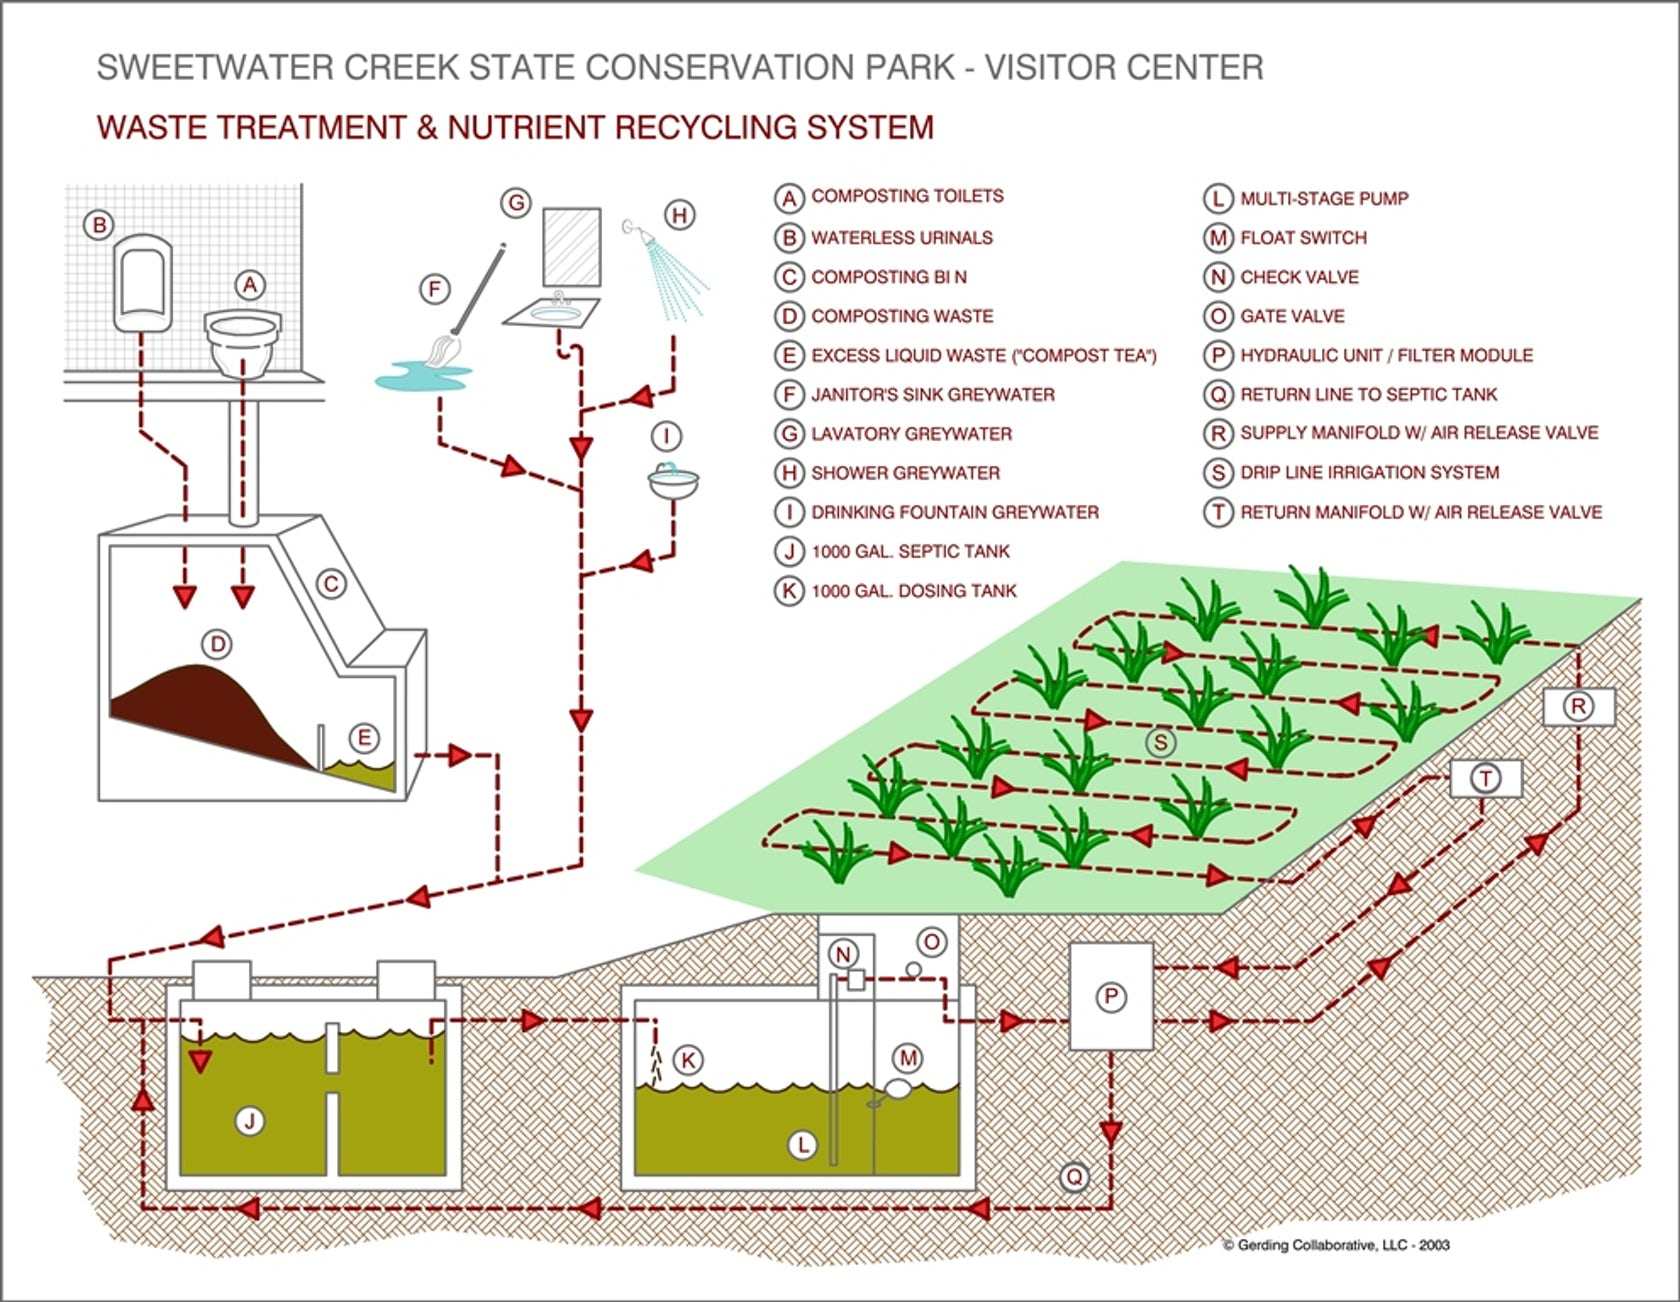 Sweetwater Creek State Park Visitor Center on Architizer